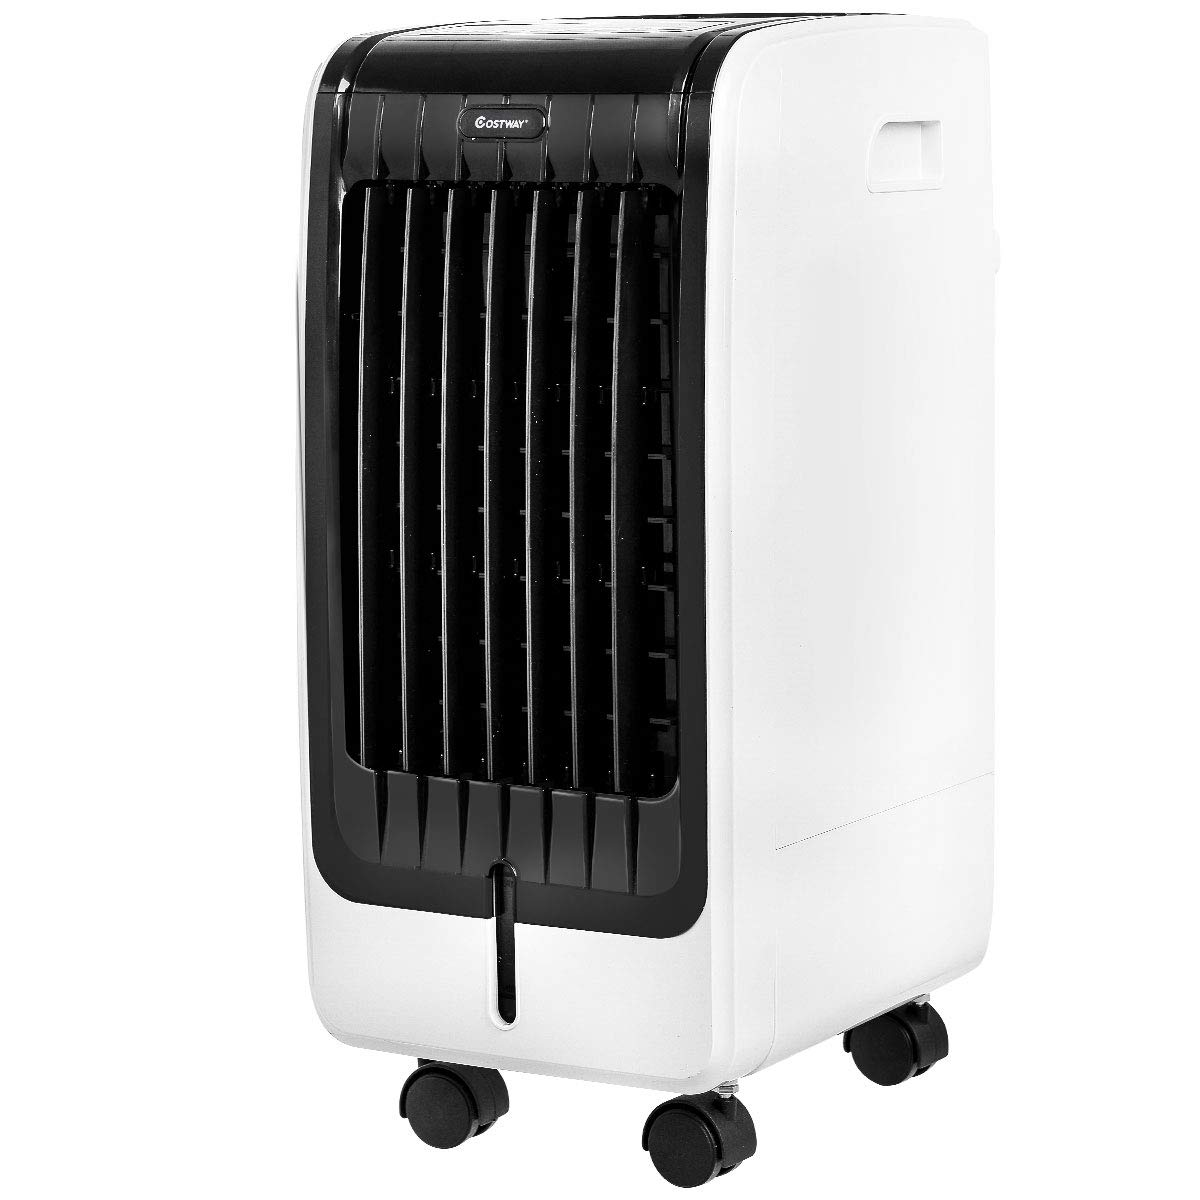 "COSTWAY Evaporative Air Cooler with Fan & Humidifier Portable Bladeless Quiet Electric Fan w/Remote Control (24.5"" H)"